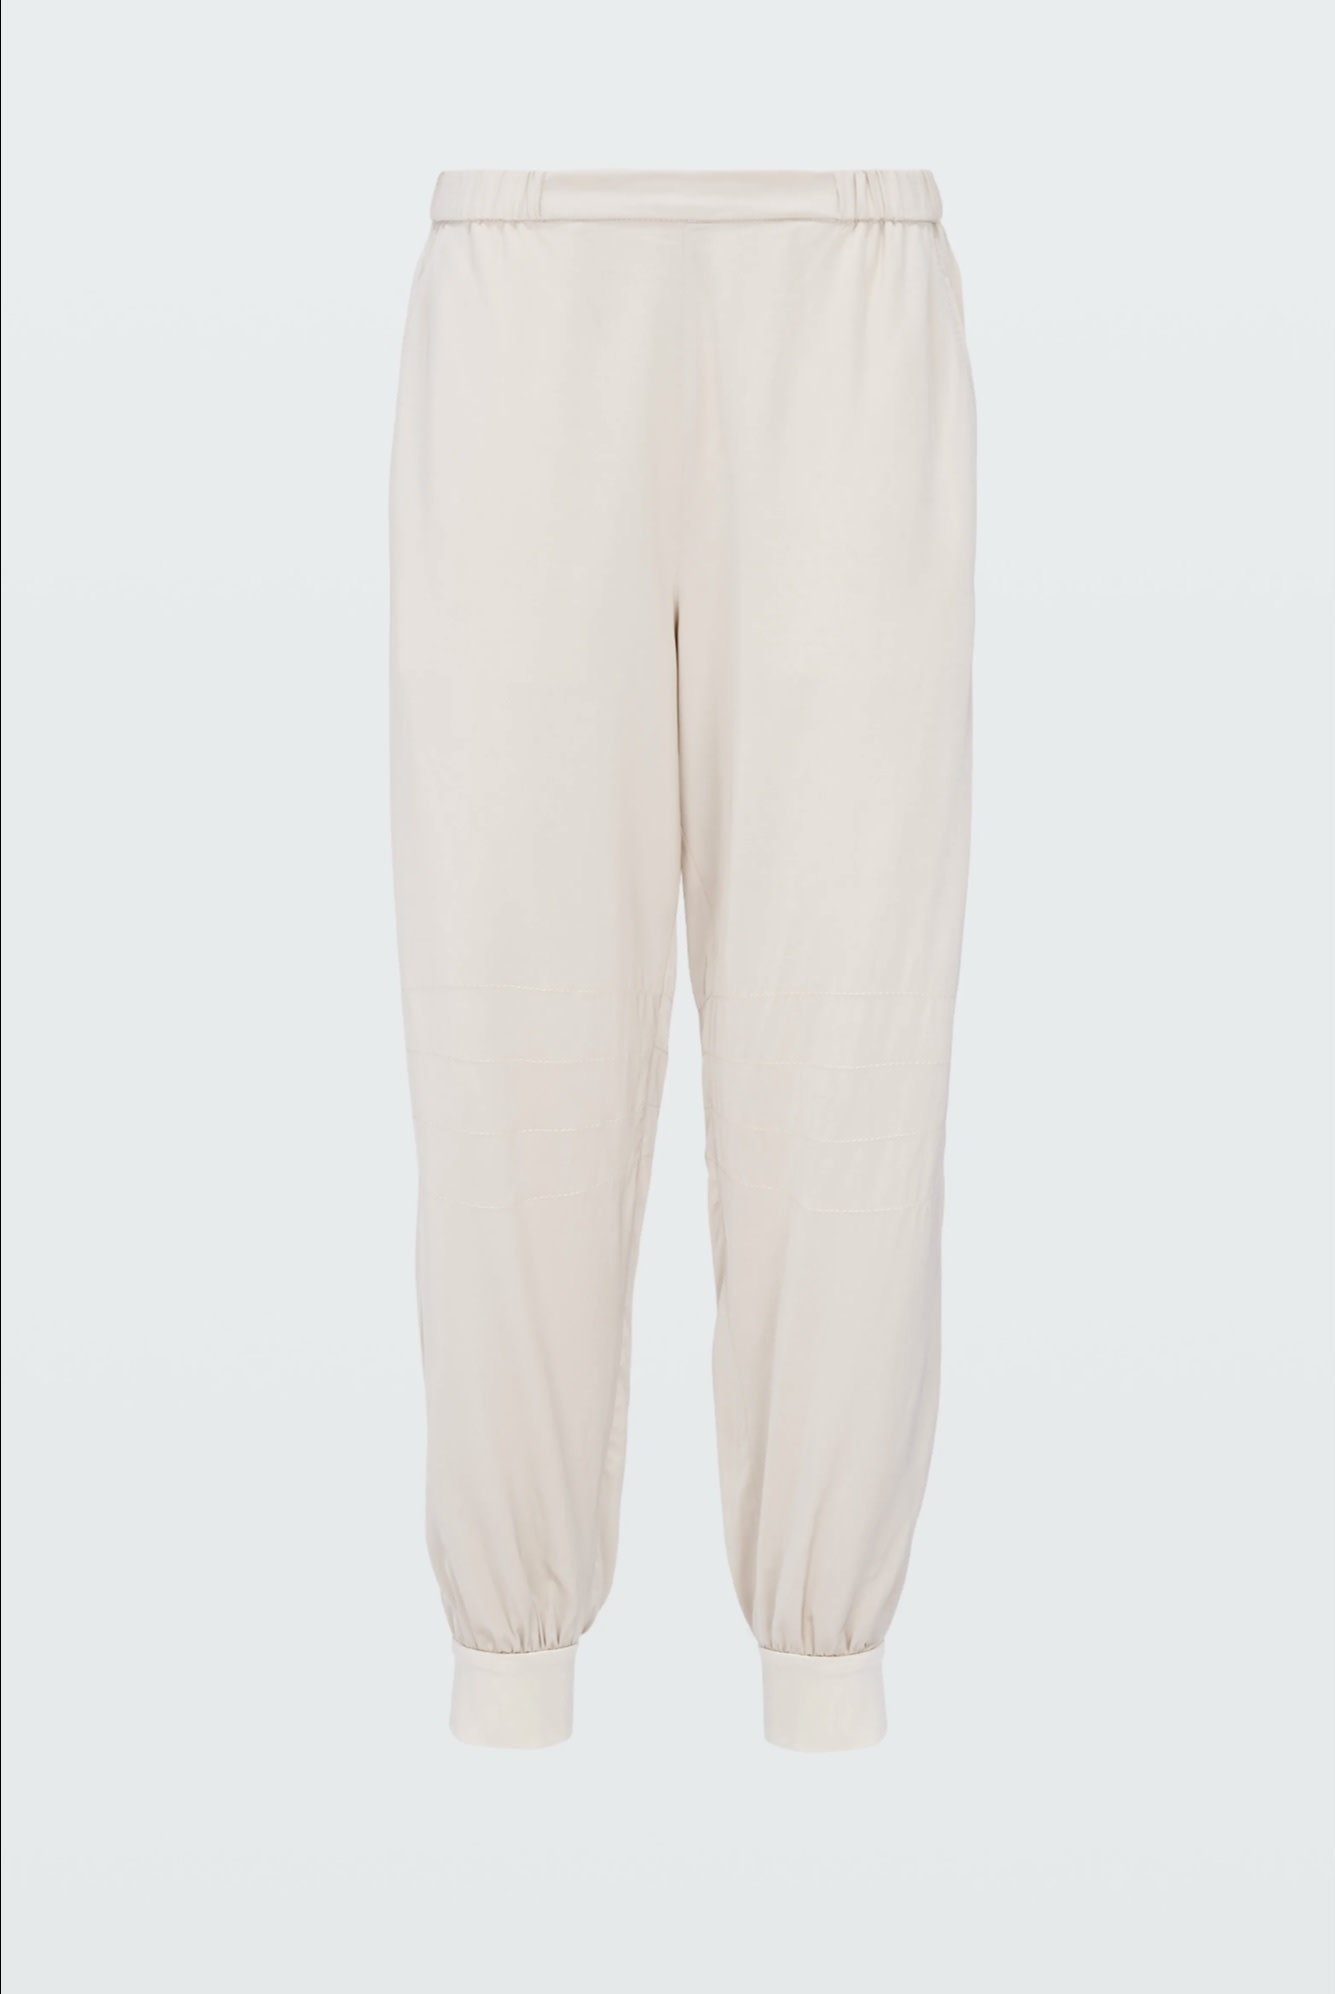 Slouchy cool pants dorothee schumacher-5